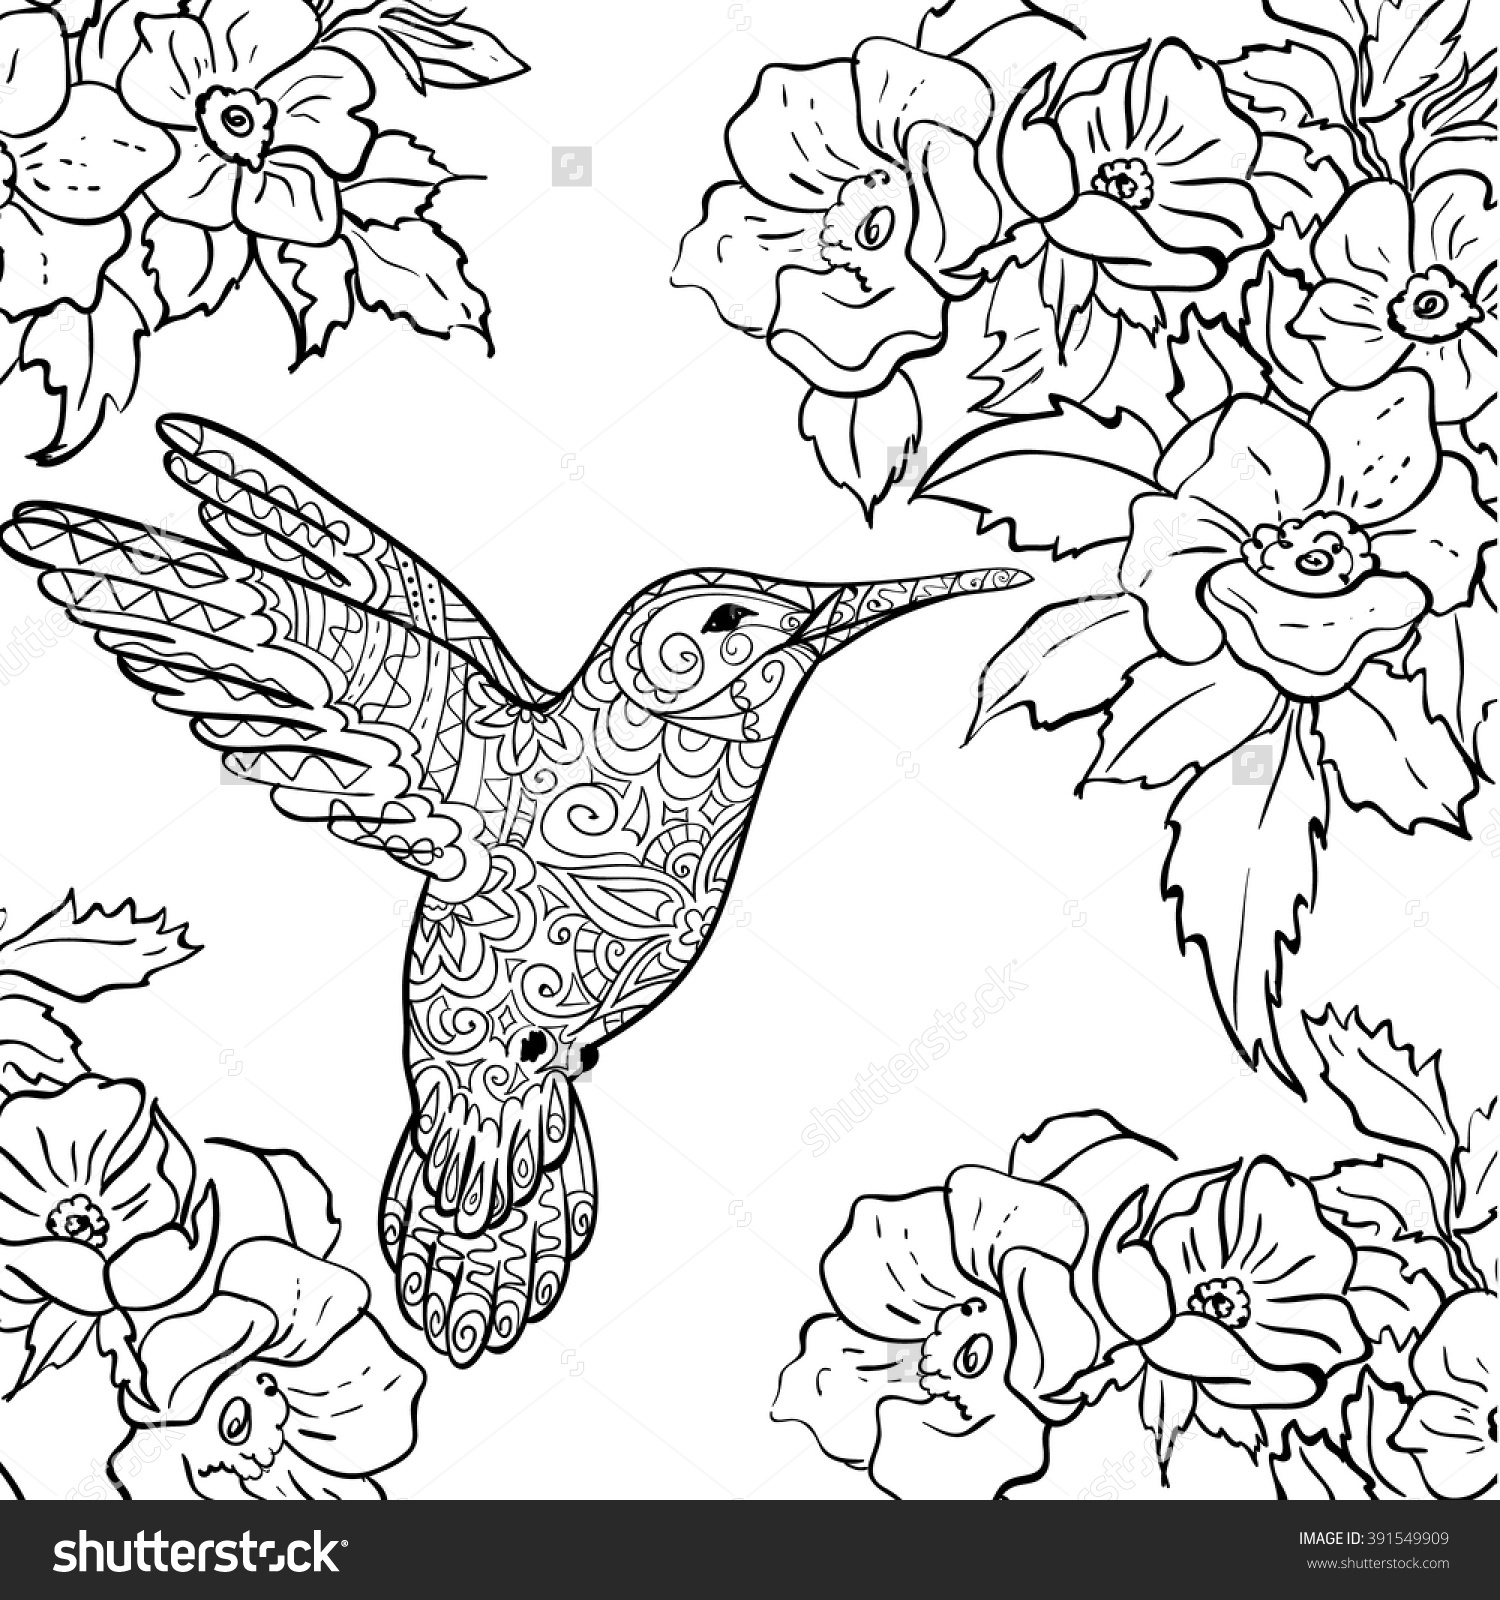 Nectar coloring #5, Download drawings